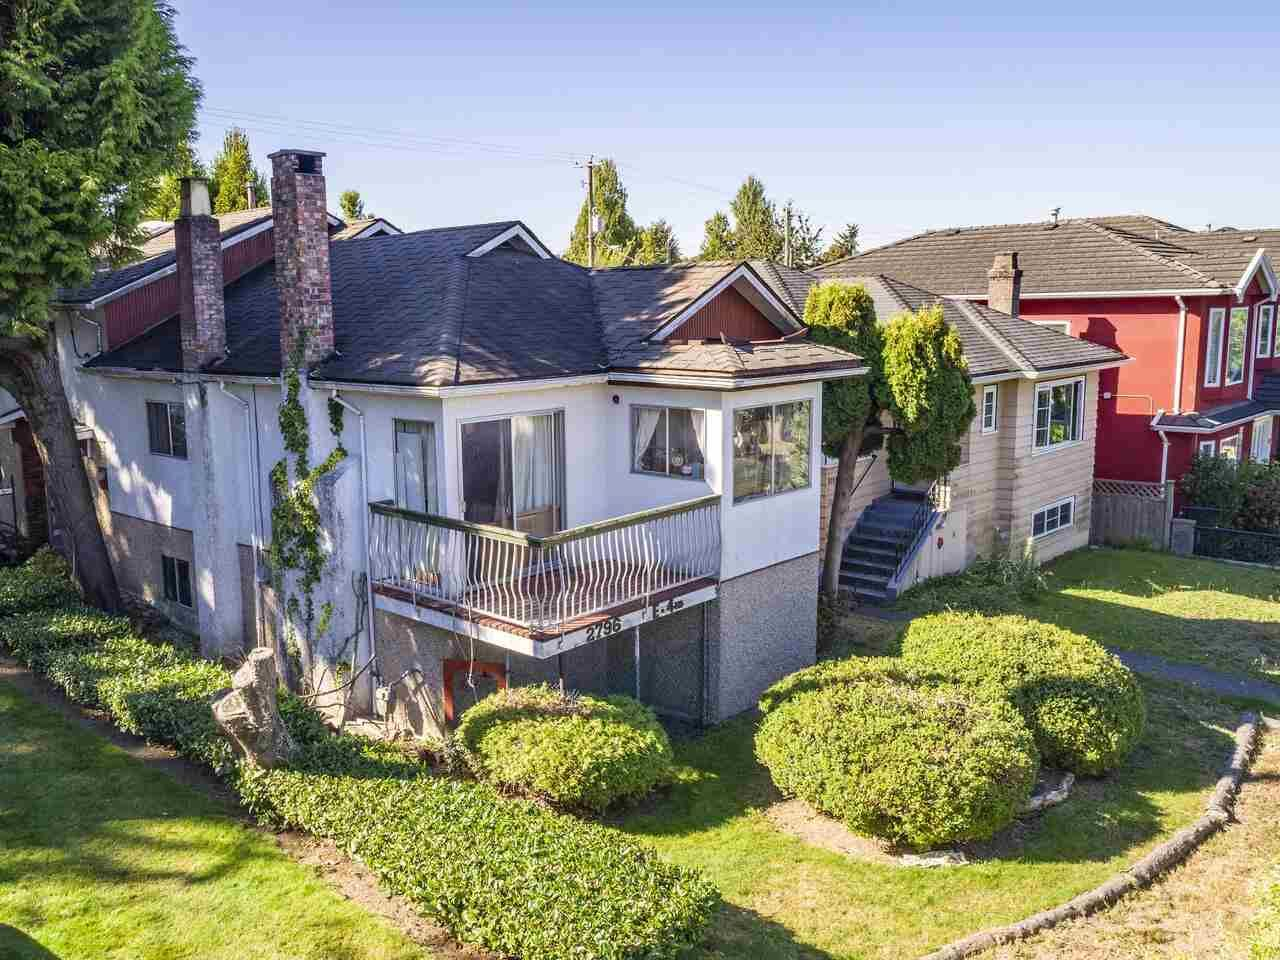 """Photo 2: Photos: 2796 E 4TH Avenue in Vancouver: Renfrew VE House for sale in """"Renfrew Heights"""" (Vancouver East)  : MLS®# R2496647"""